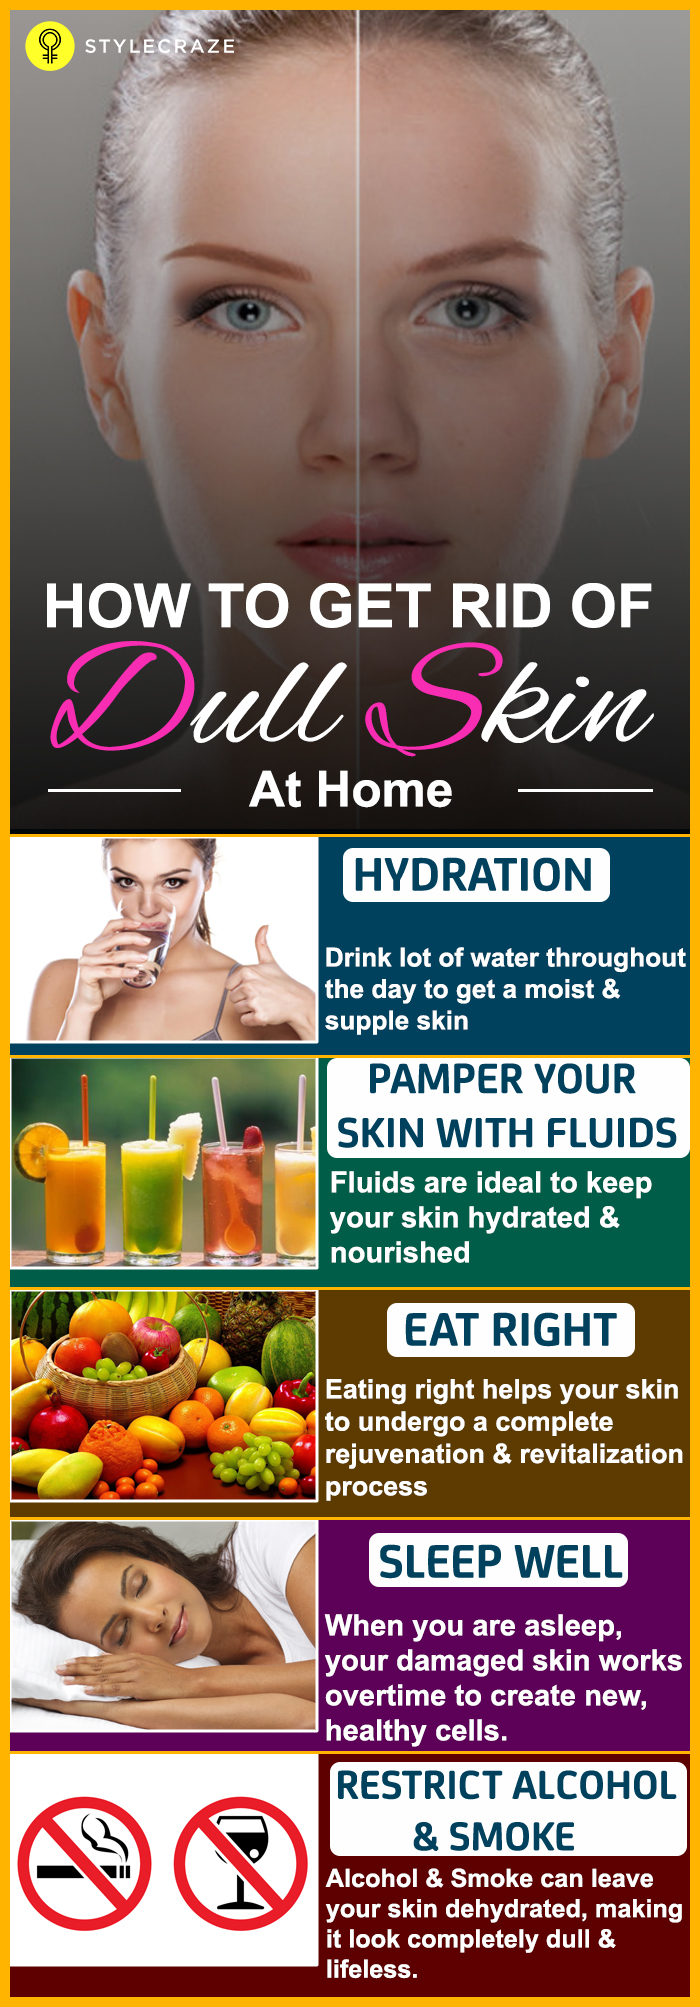 How to get rid of dull skin at home